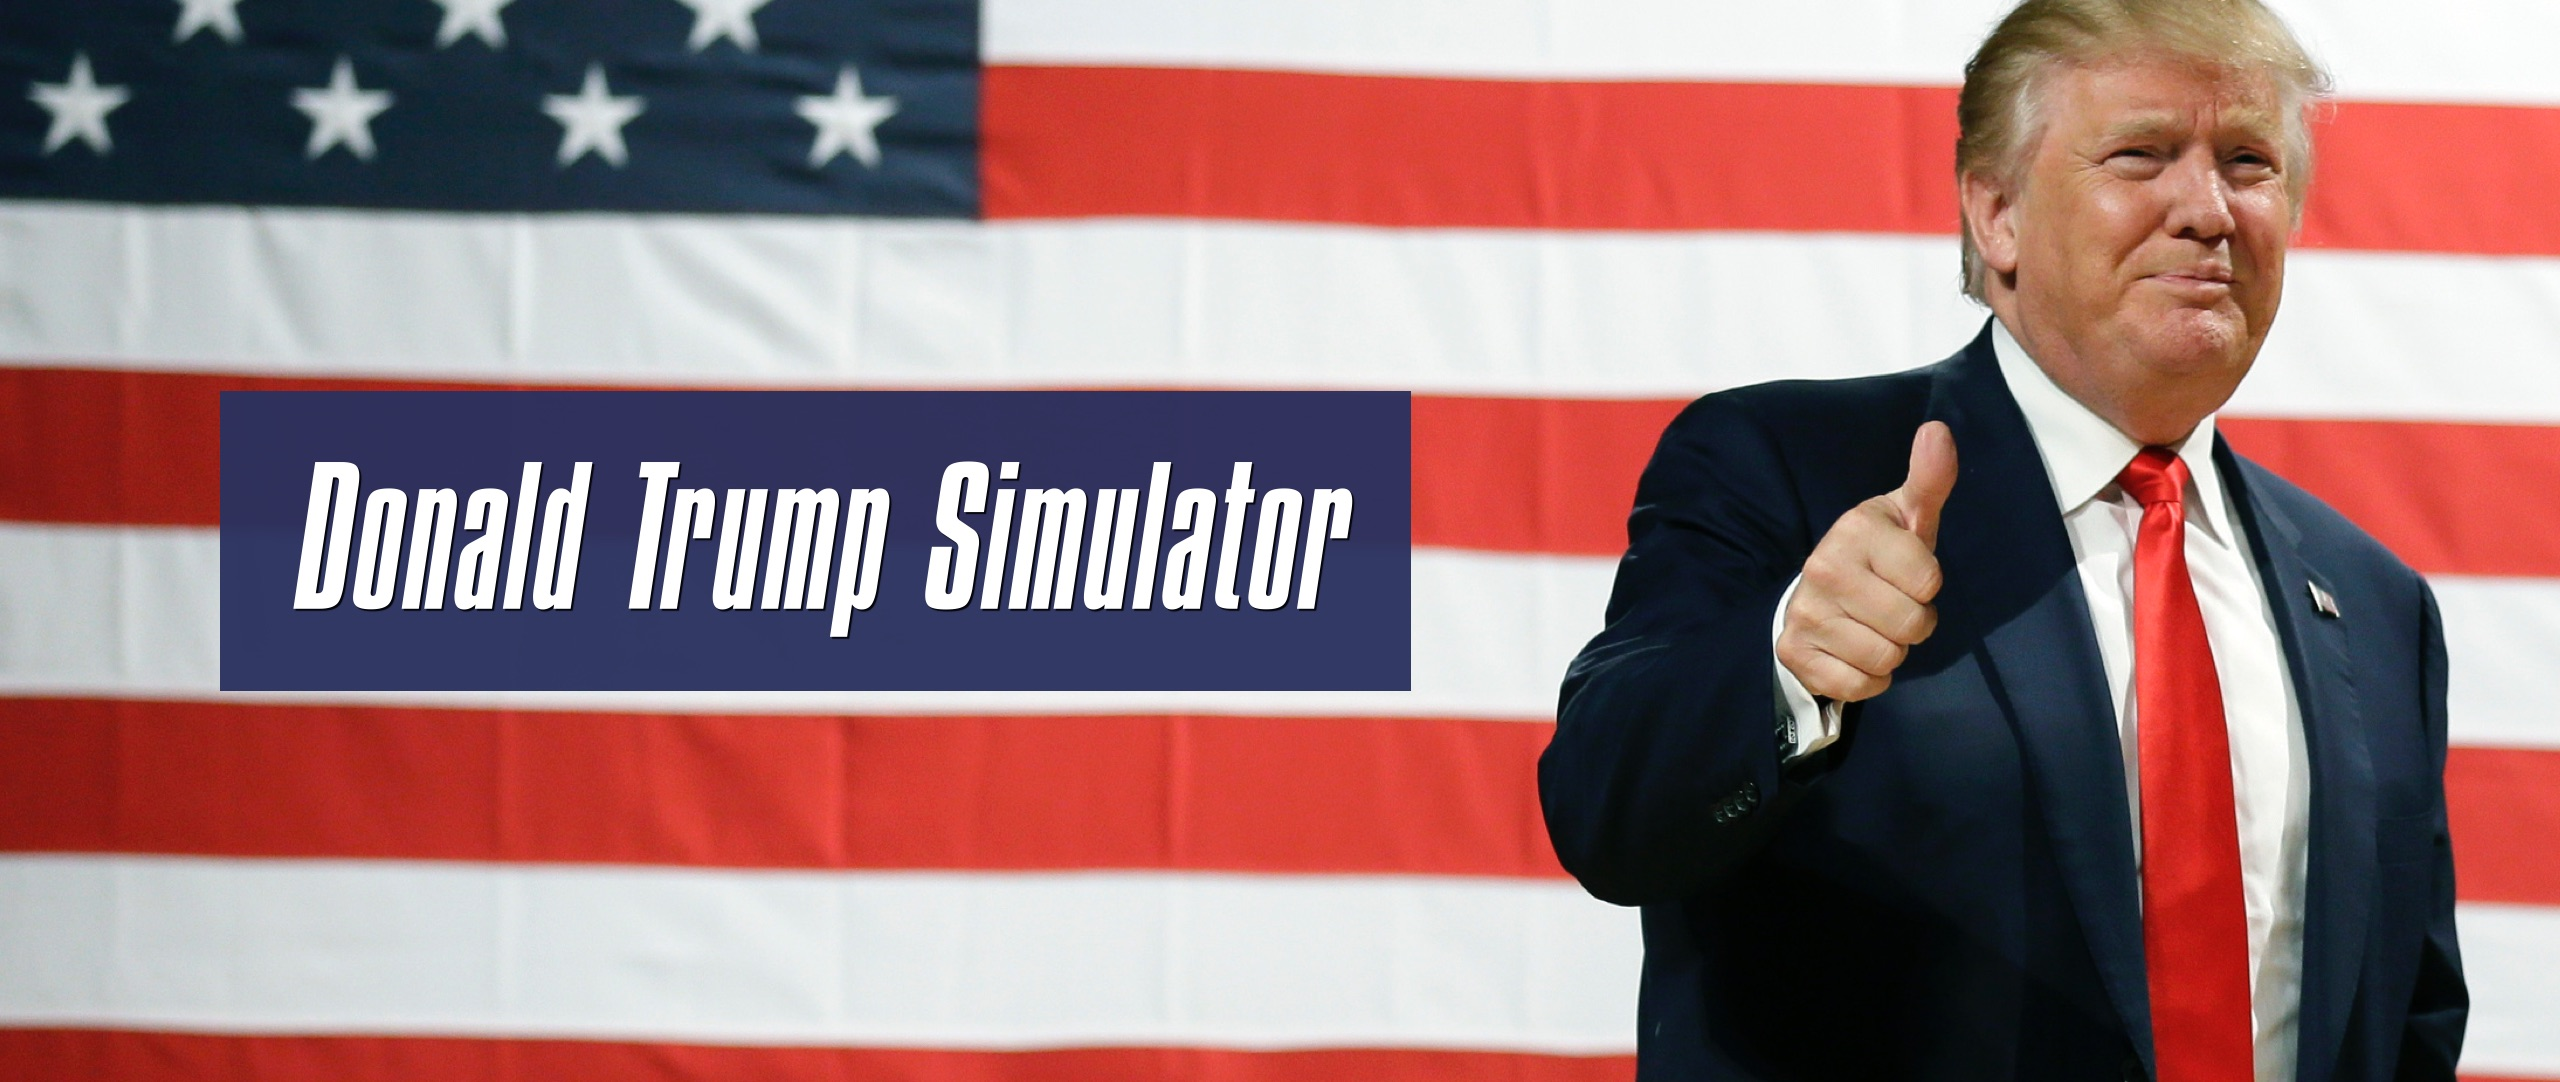 The Donald Trump Simulator